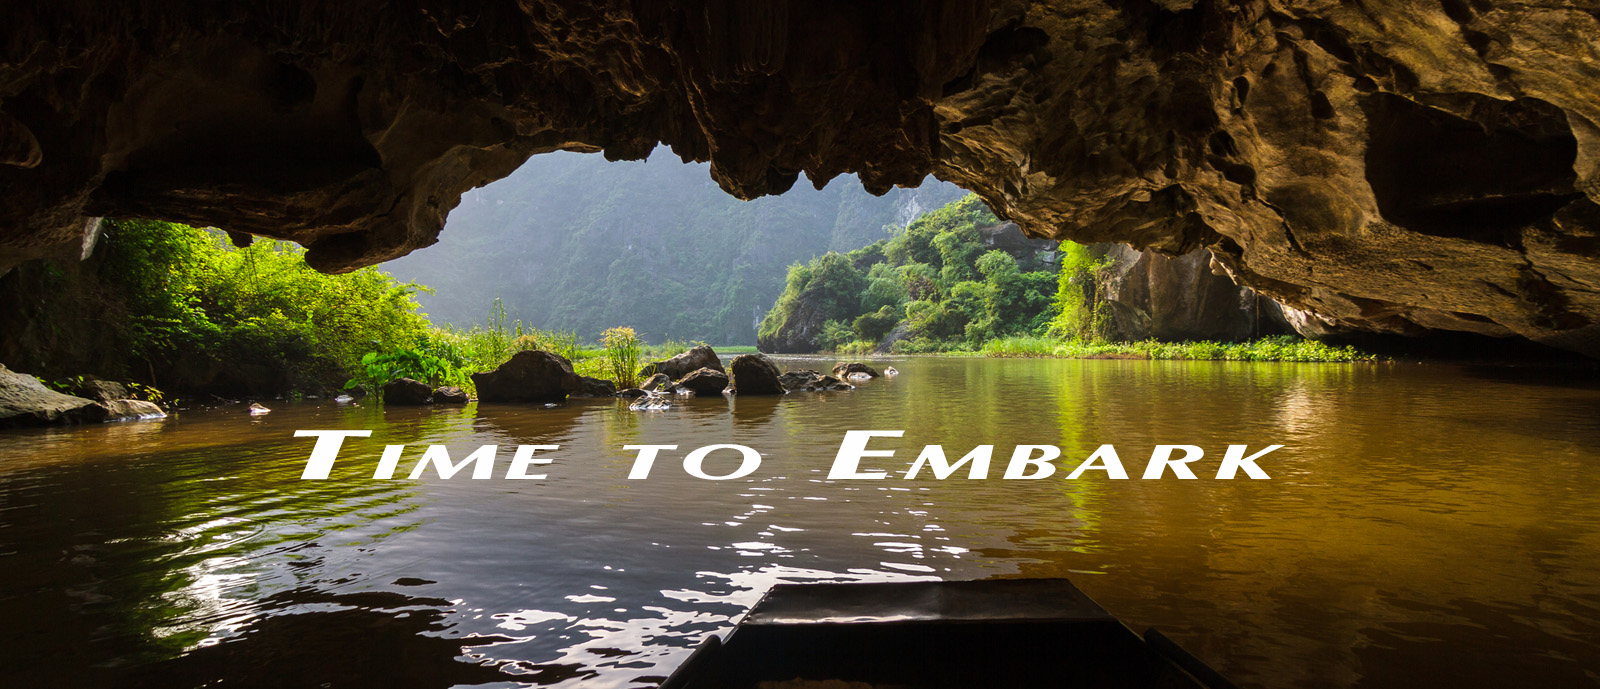 A boat passes through Tam Coc, a flooded cave at the Trang An UNESCO World Heritage site in Ninh Binh, Vietnam, depicting the start of a personal journey of discovery